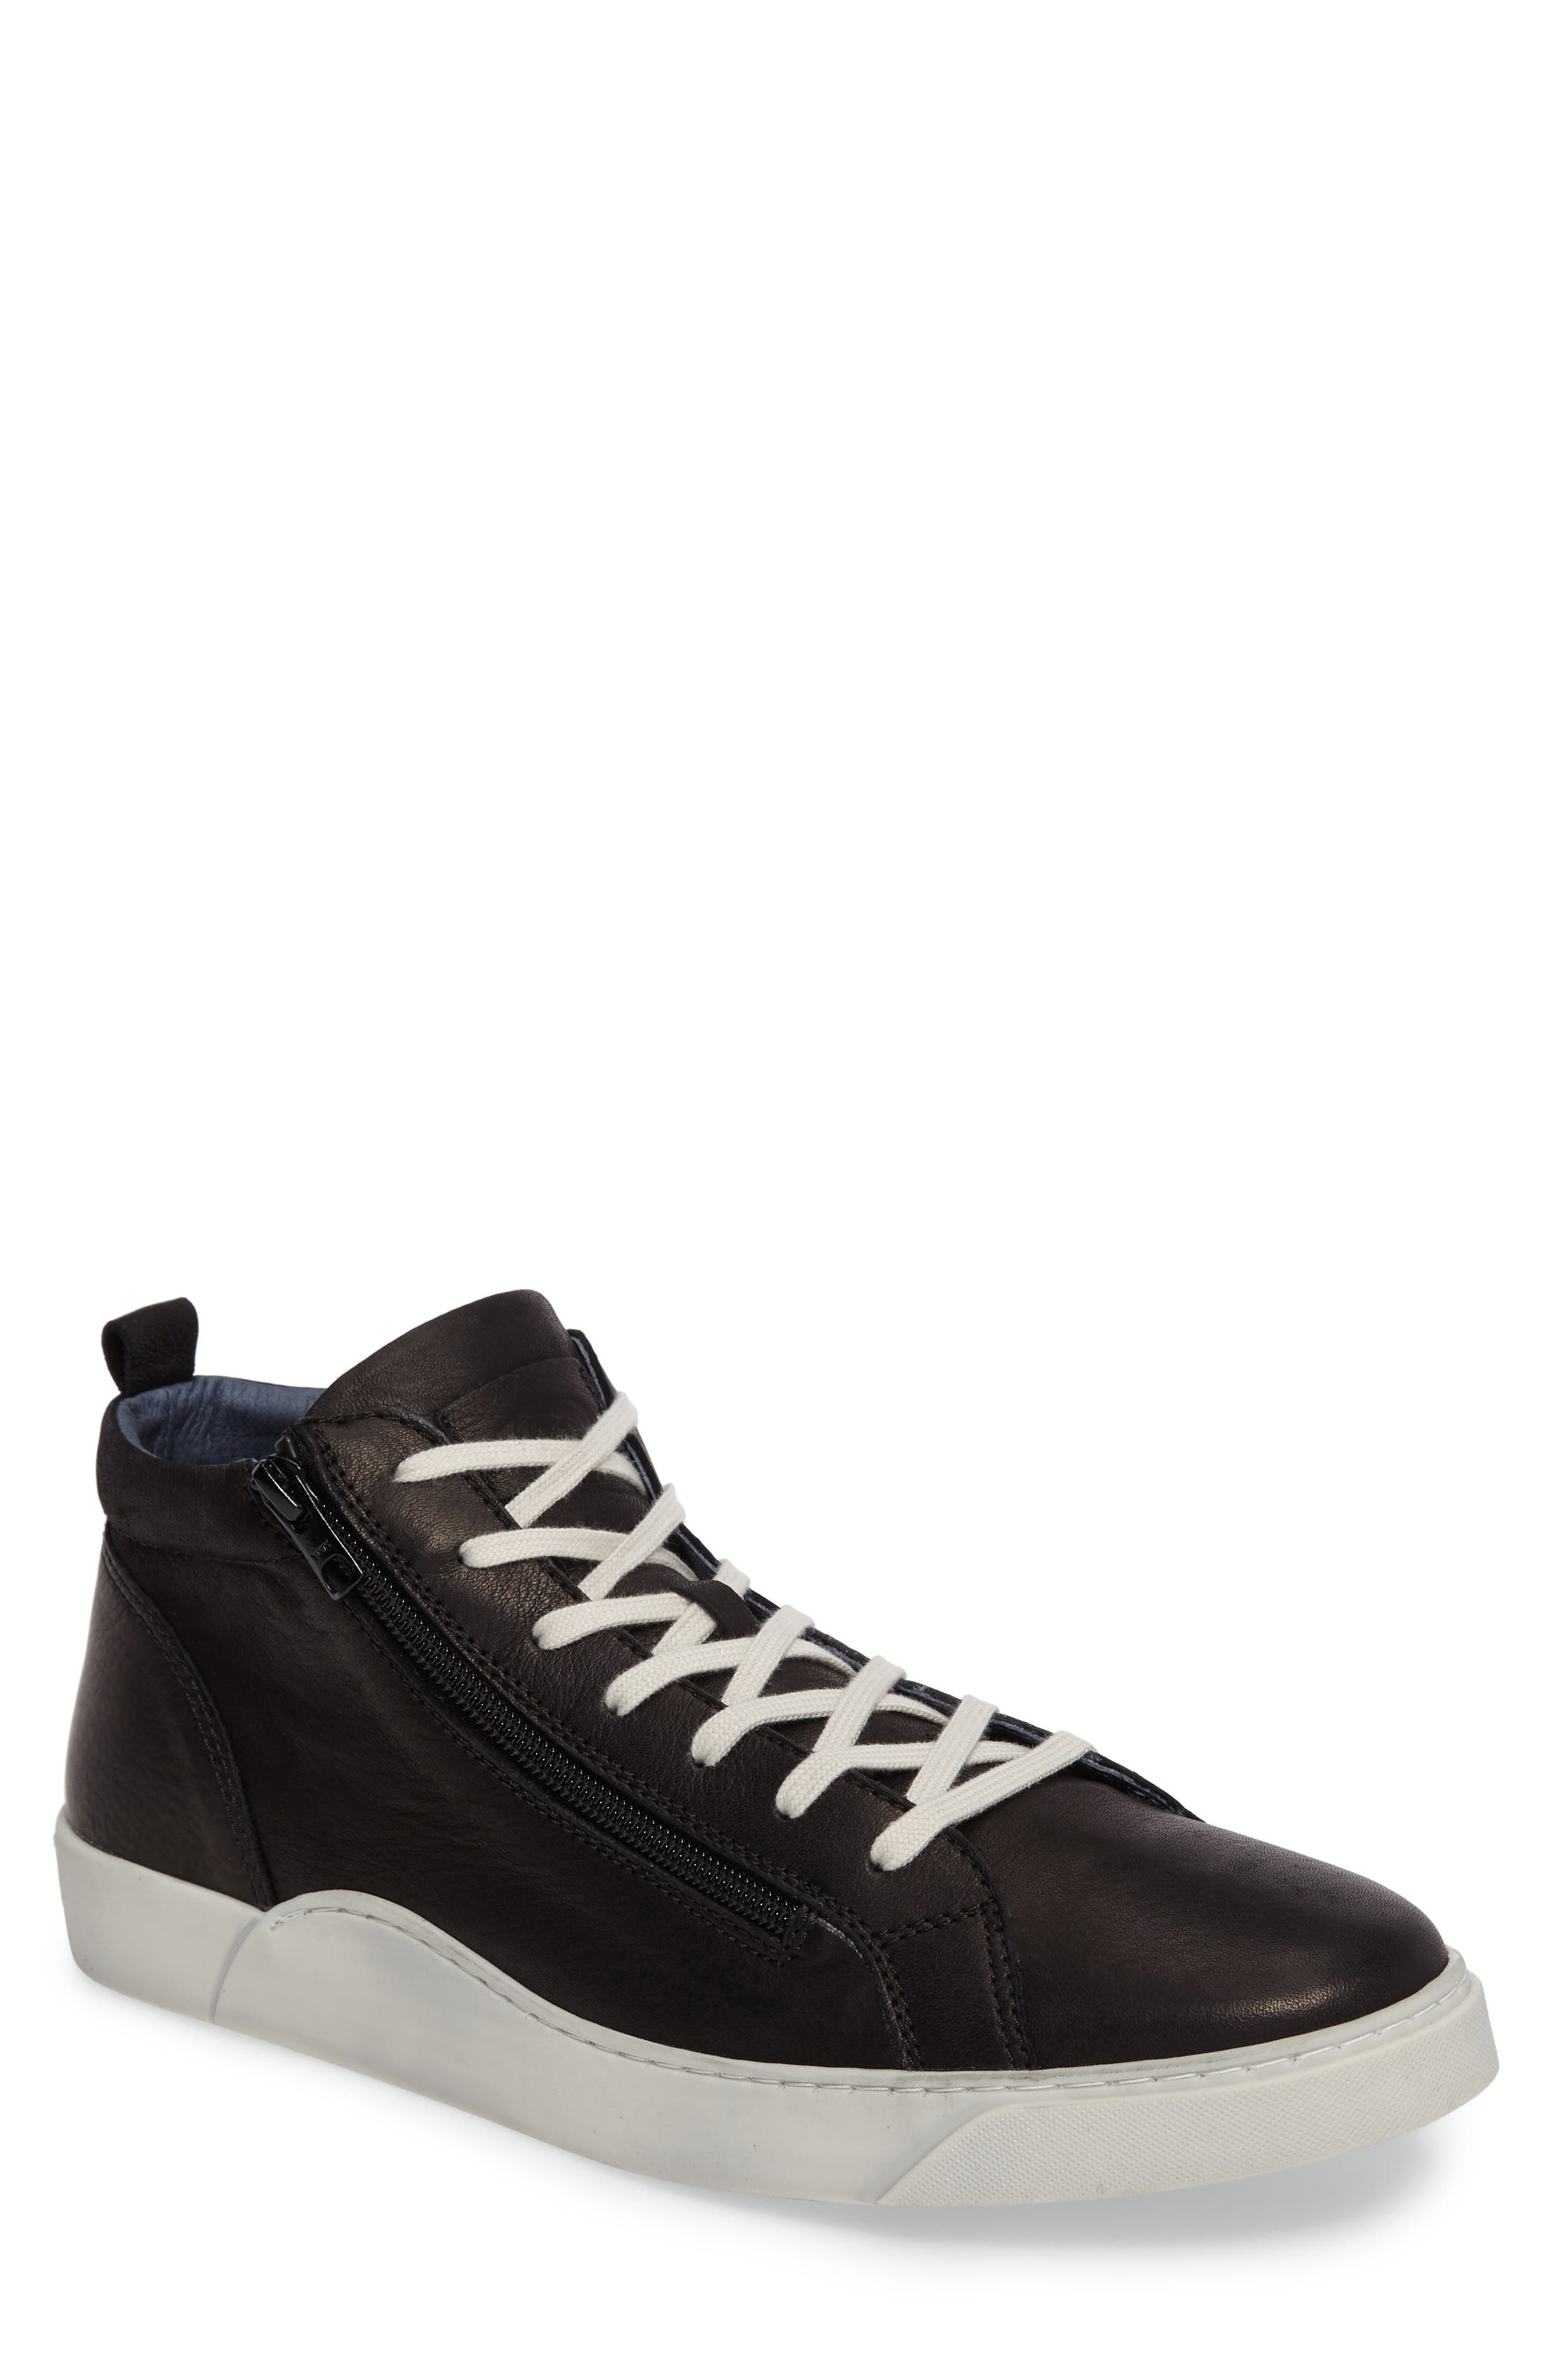 Irwin Mid Top Sneaker,                         Main,                         color, Black Leather